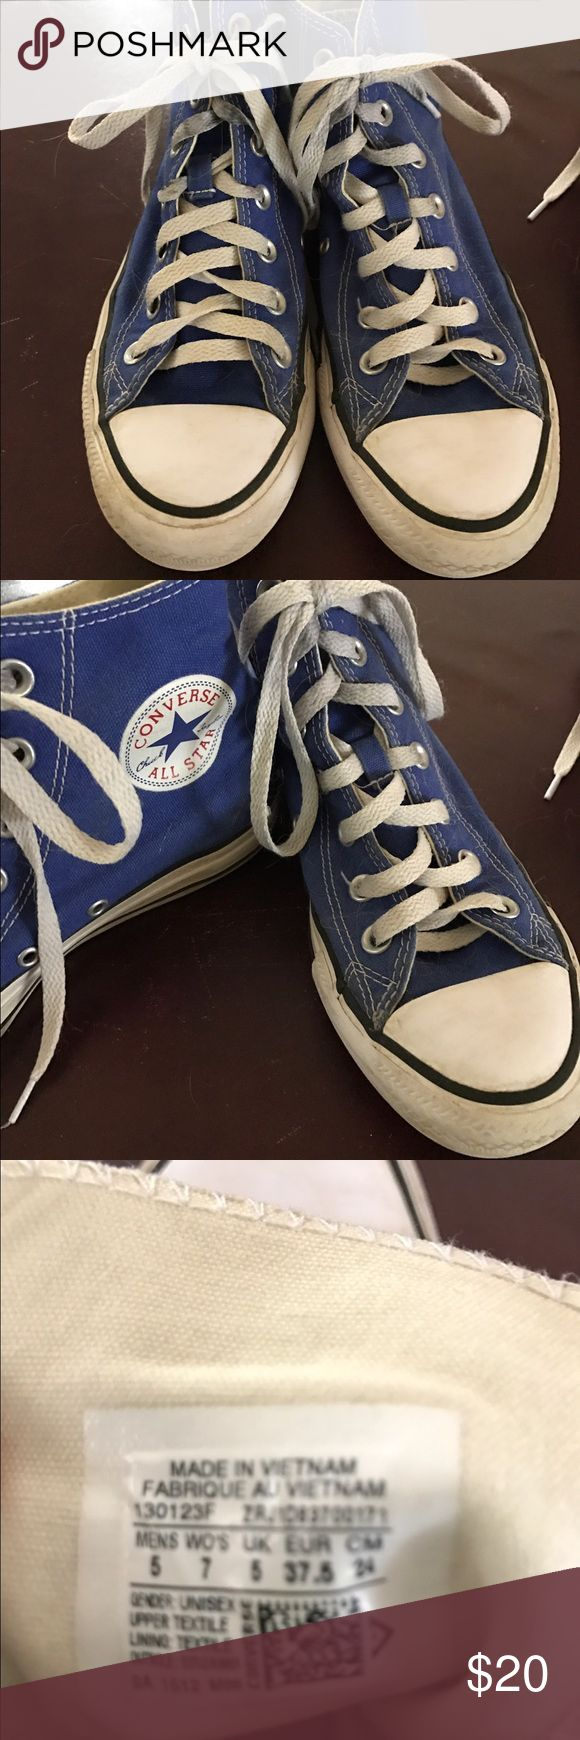 Blue Converse high tops size 7. These converse high tops are so cute with jeans, shirts or skirts. Women's size 7. Converse Shoes Sneakers